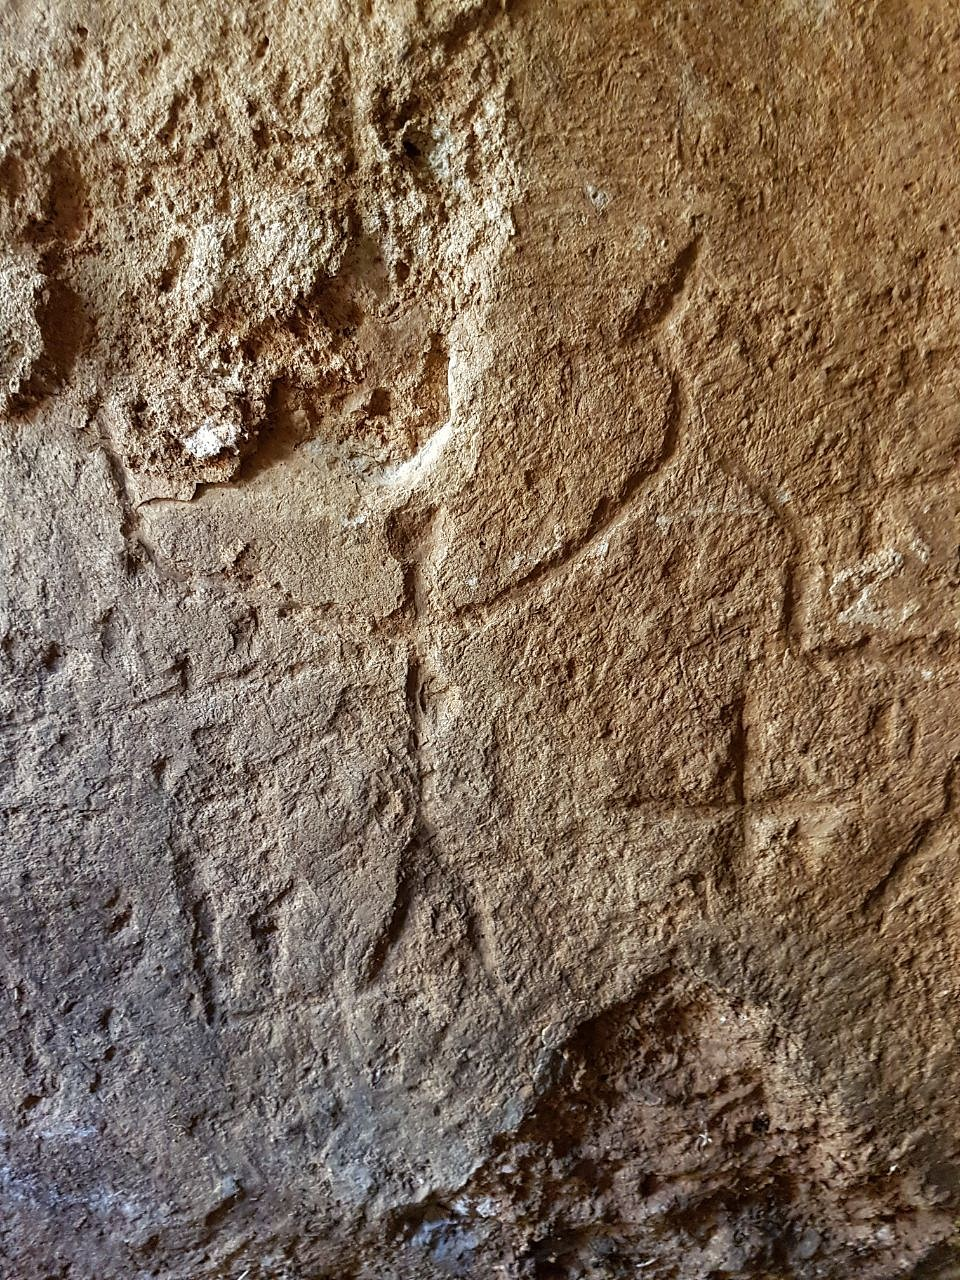 Engravings on the walls: Human figures and crosses.